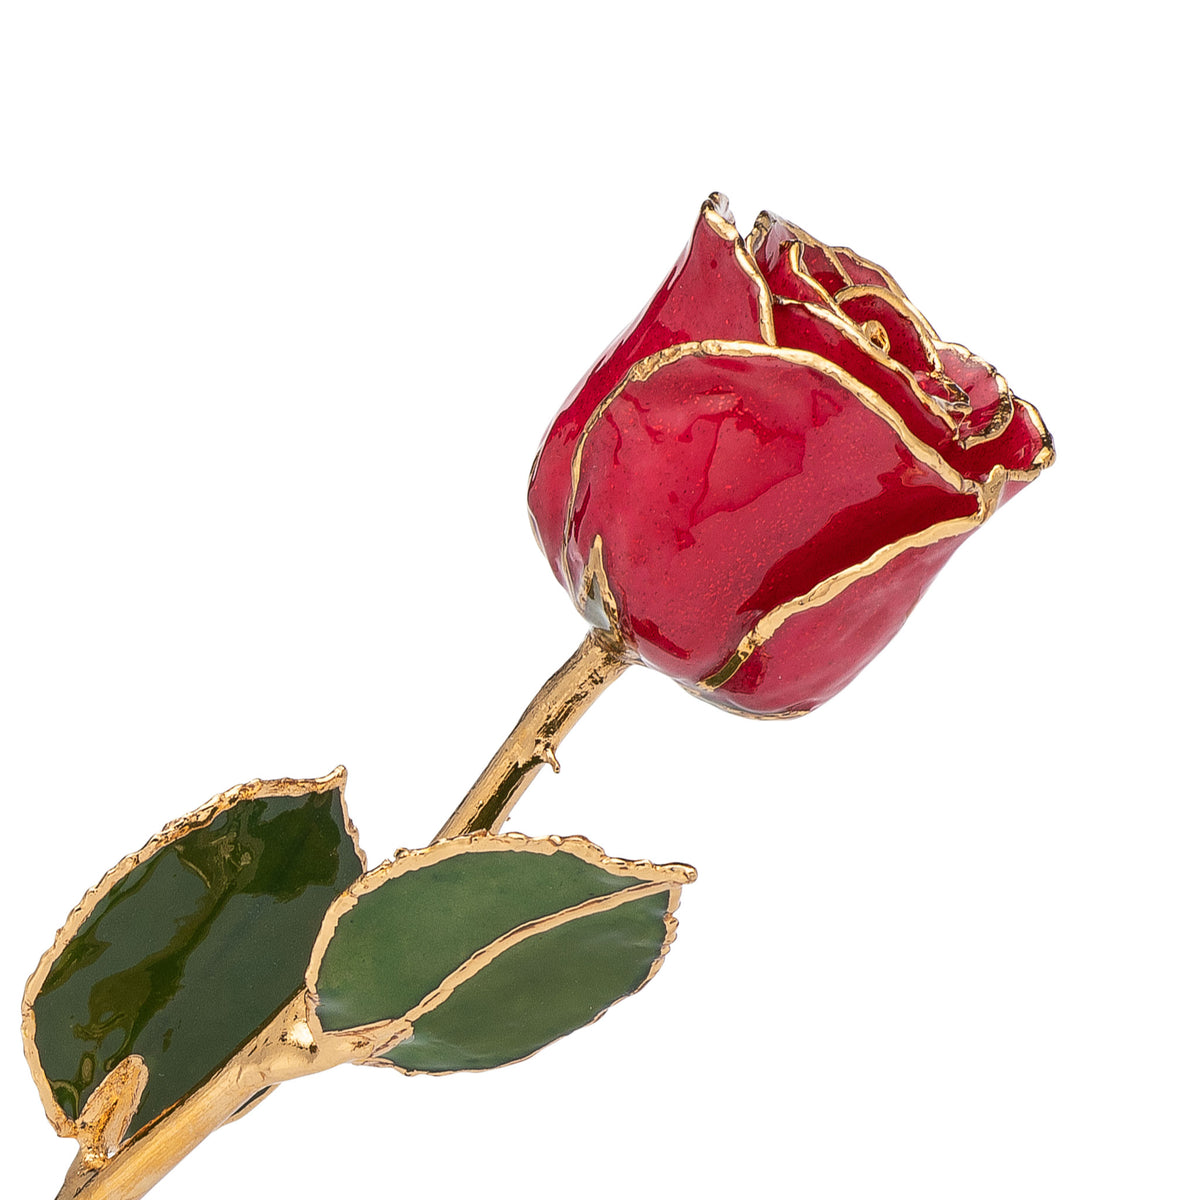 24K Gold Trimmed Forever Rose with Red Petals with Suspended Sparkles. View of Stem, Leaves, and Rose Petals and Showing Detail of Gold Trim